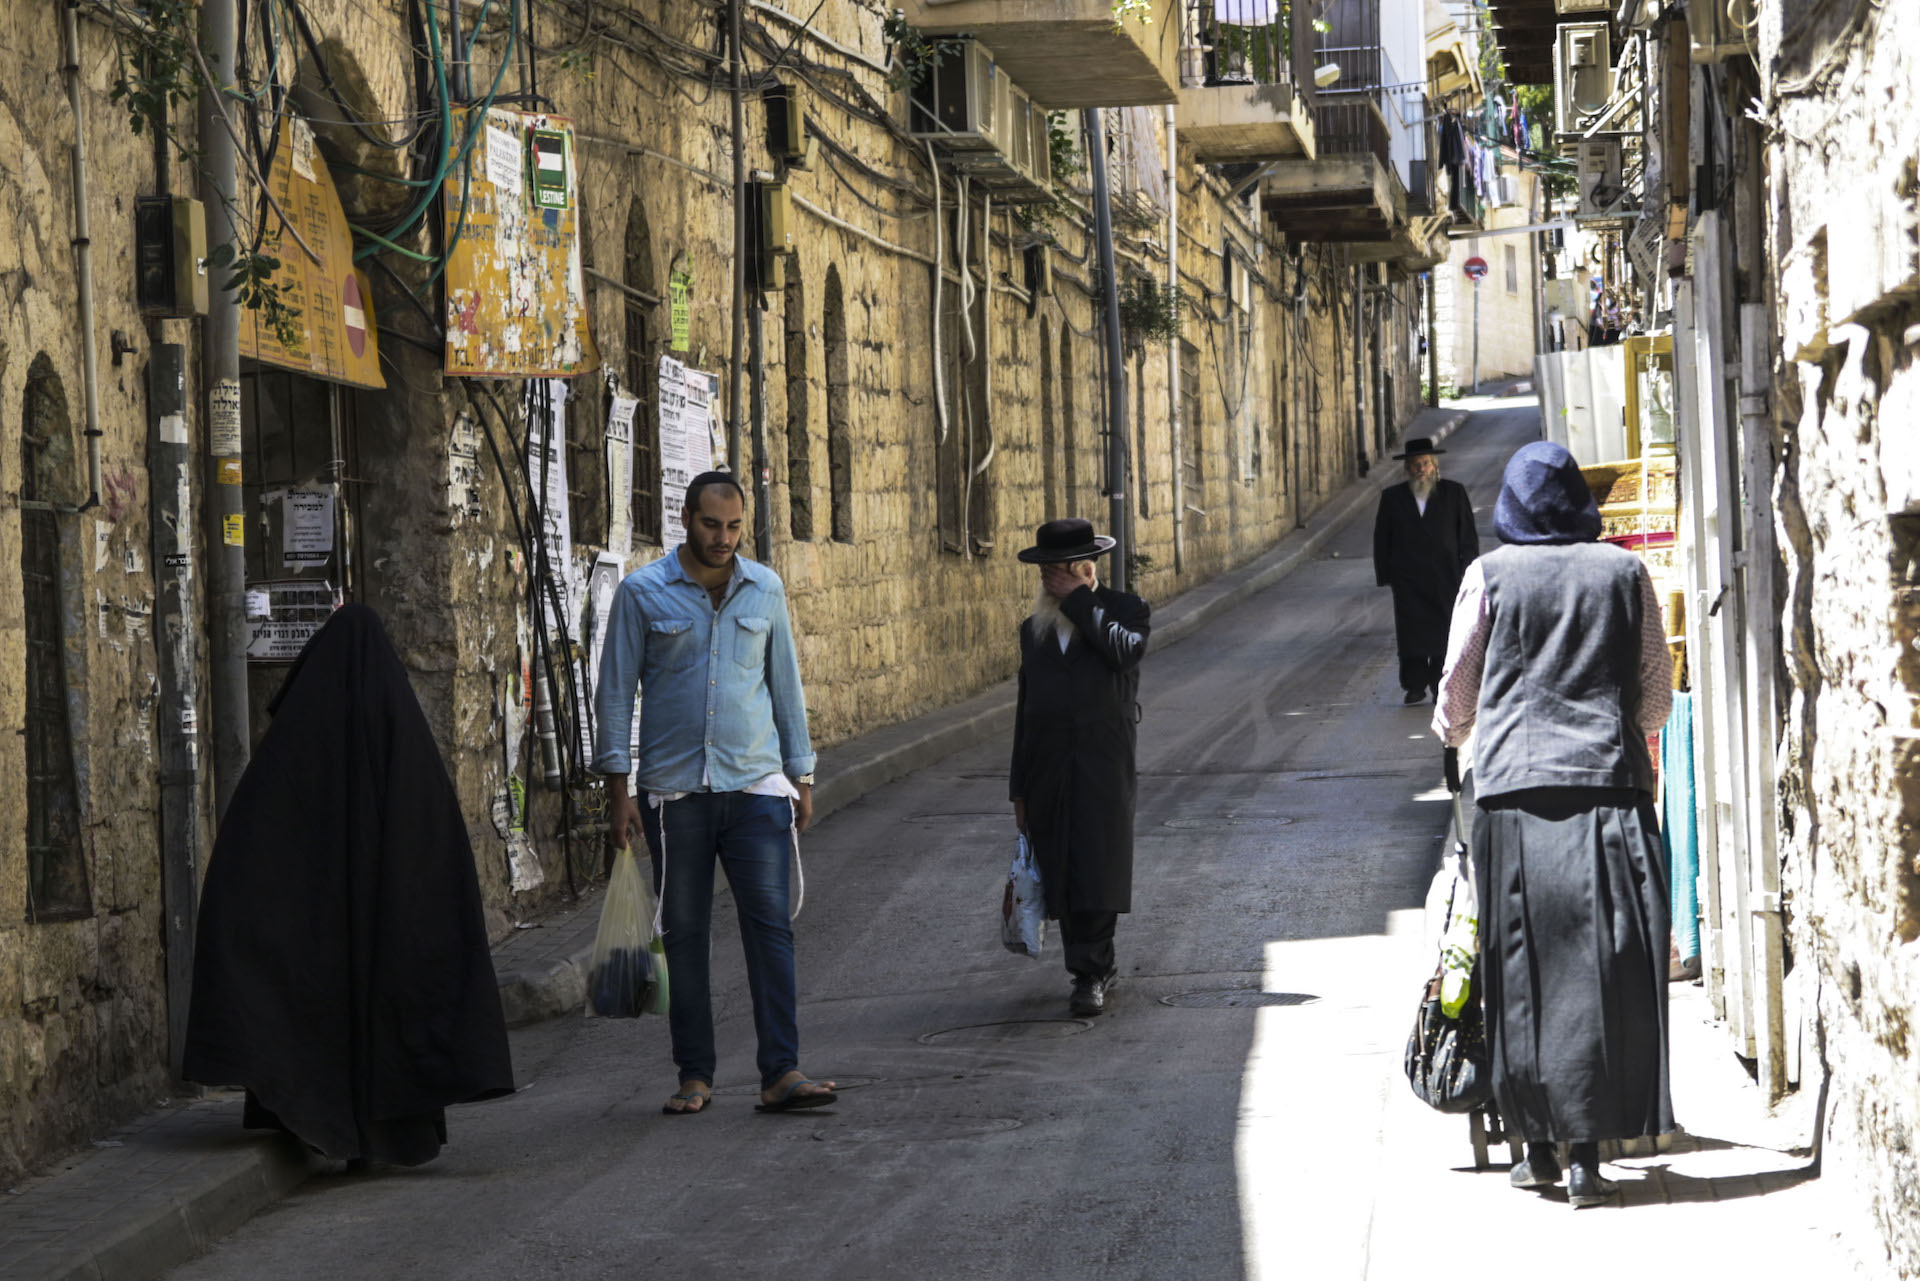 "A man moves out of the way and another covers his face as a woman in burqa-style veil walks in a street if the Mea Shearim neighborhood of Jerusalem. The ""frumkas"", a sect that claims to bring back an ancient level of modesty among the Haredi, are highly criticized by the larger community. Photo: Gustavo Martínez Contreras